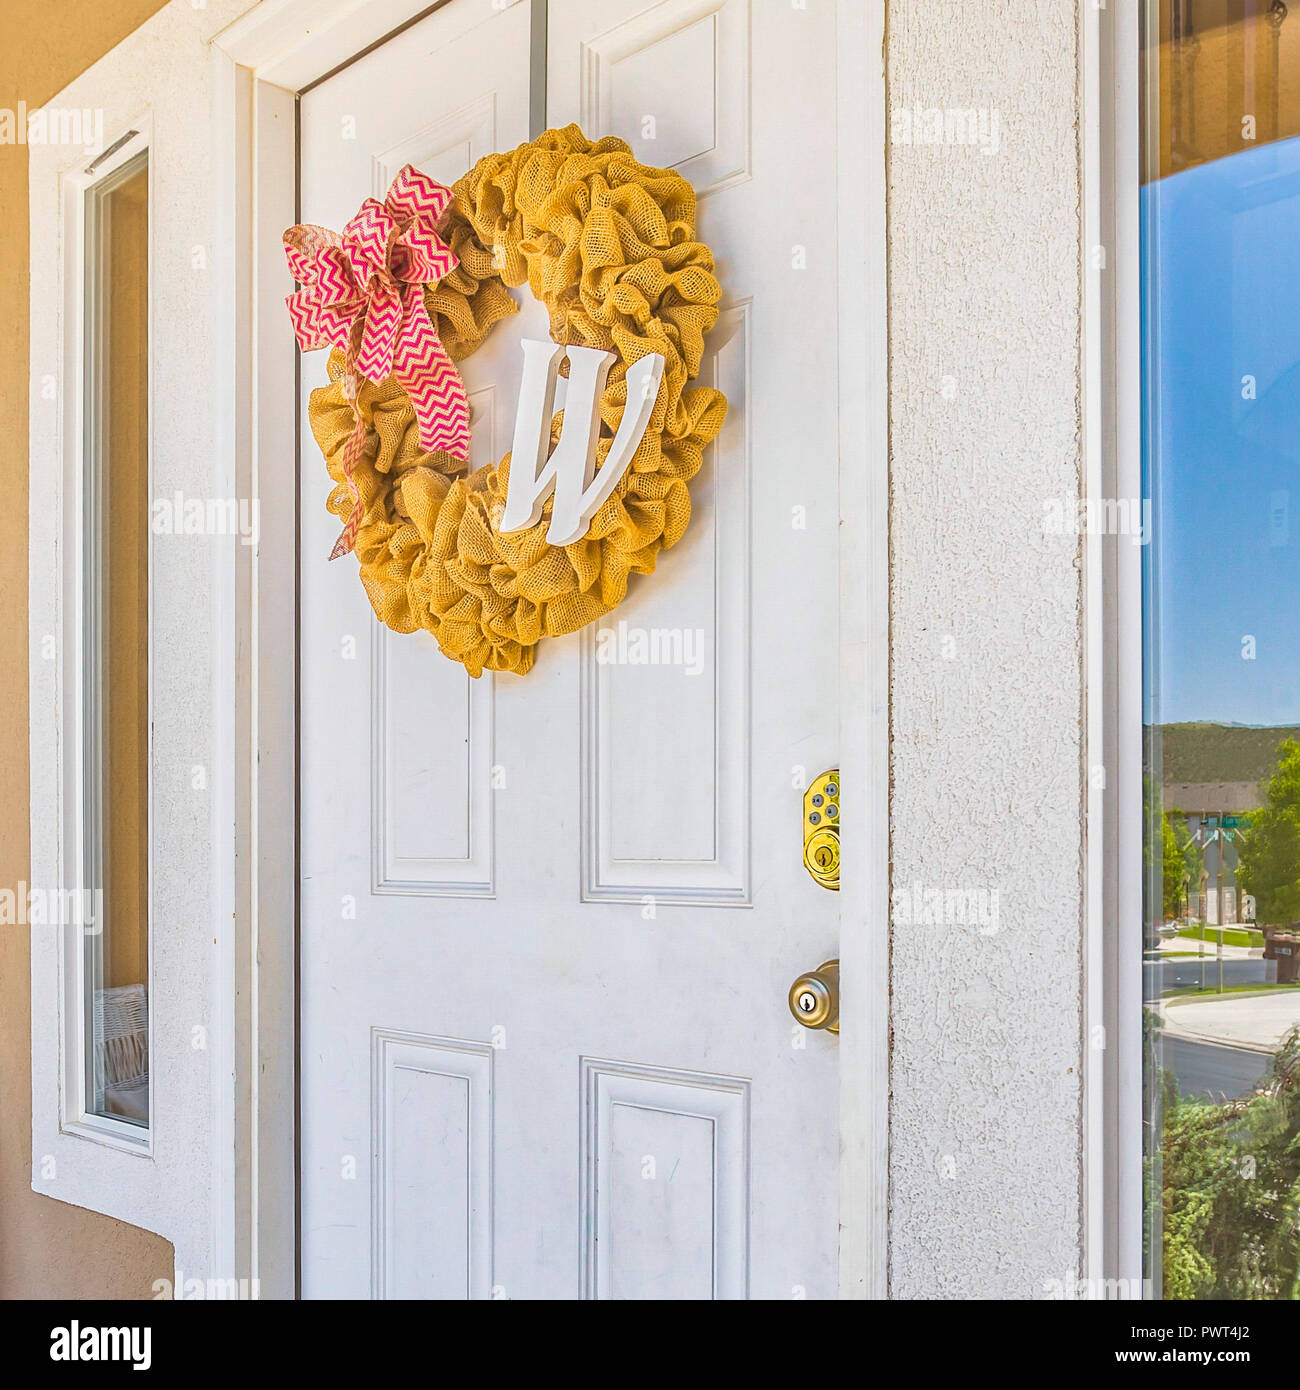 Front Door With Wreath And Reflective Glass Window Stock Photo